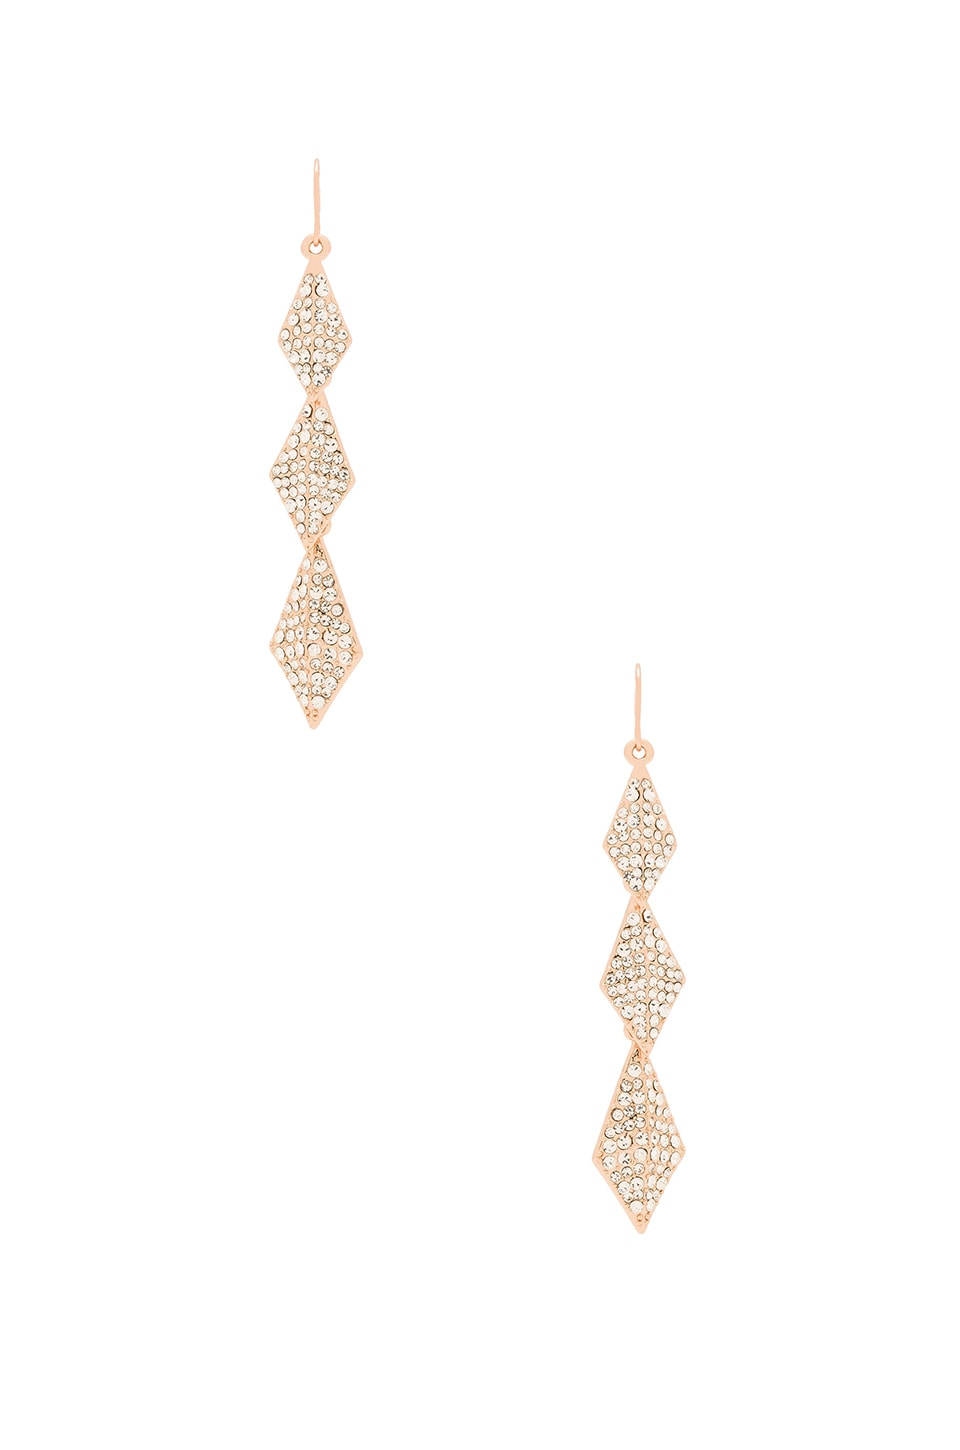 Lisa Freede Stella Earrings in Rose Gold & Clear